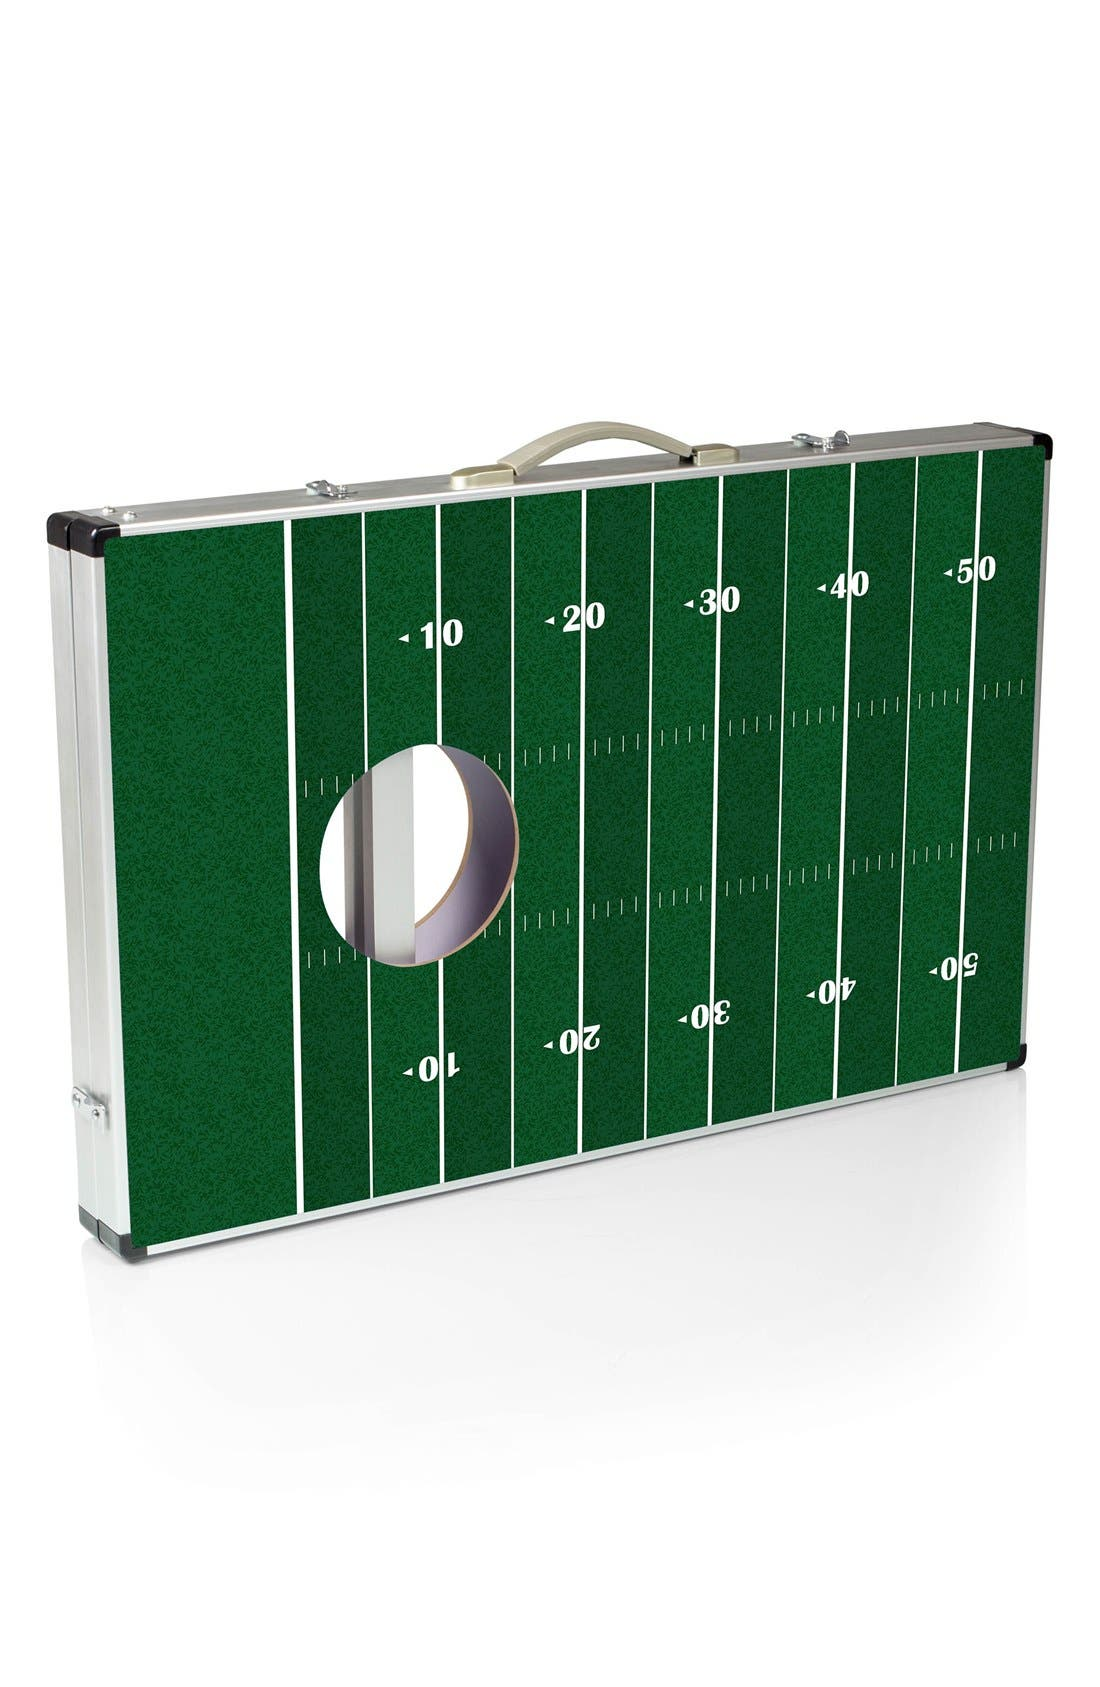 'Football' Bean Bag Toss Game,                             Alternate thumbnail 2, color,                             Green